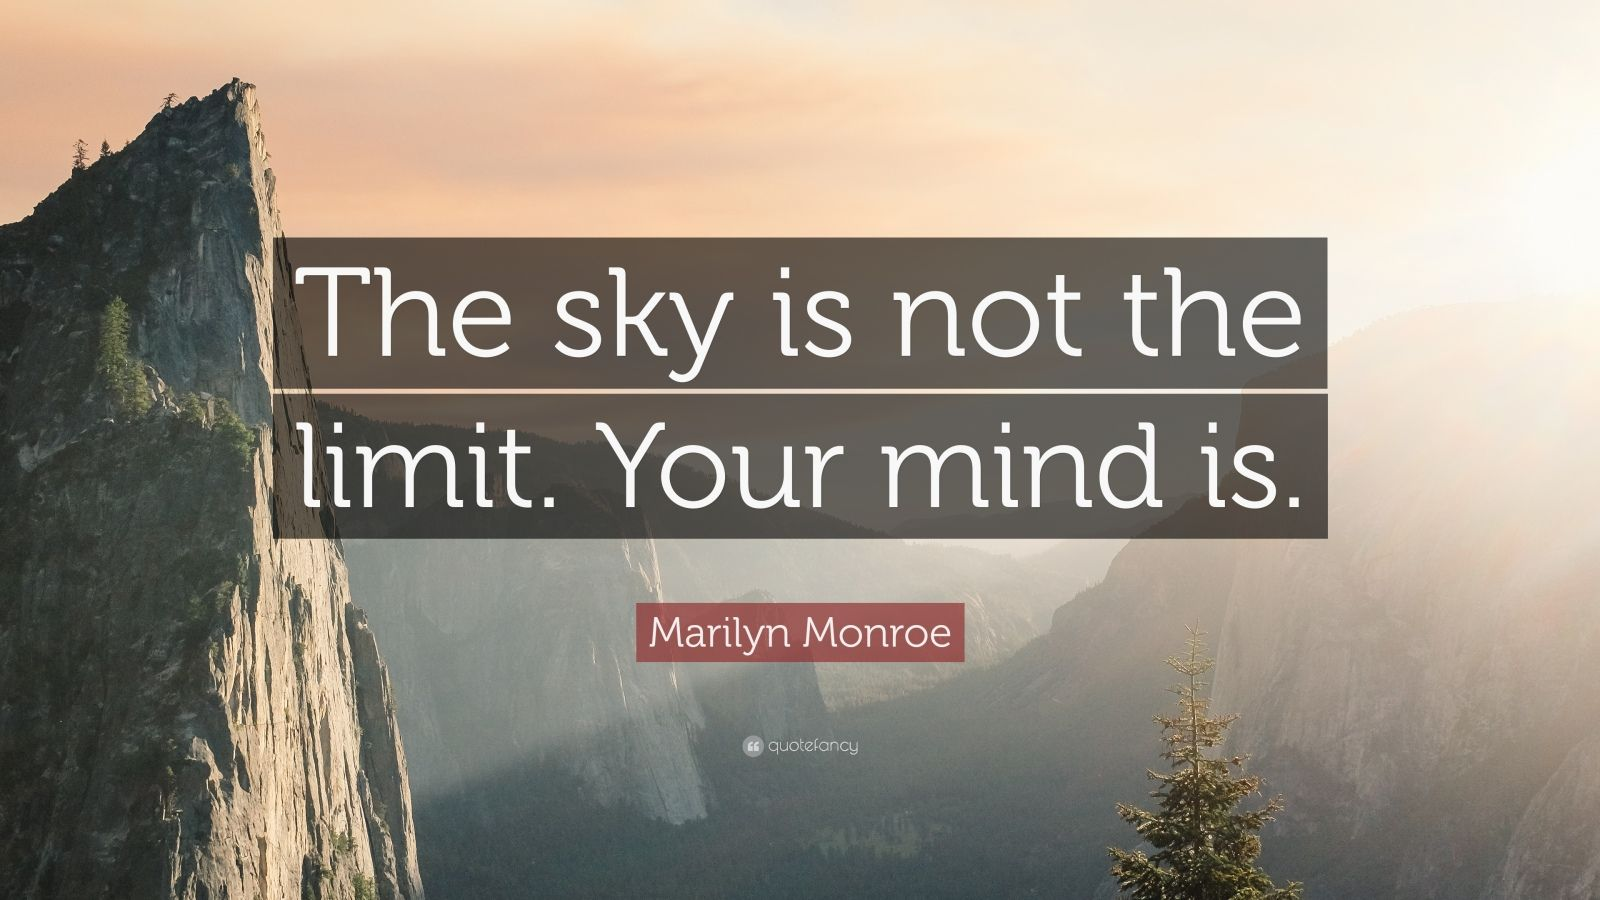 Hd Wallpapers Motivational Quotes Marilyn Monroe Quote The Sky Is Not The Limit Your Mind